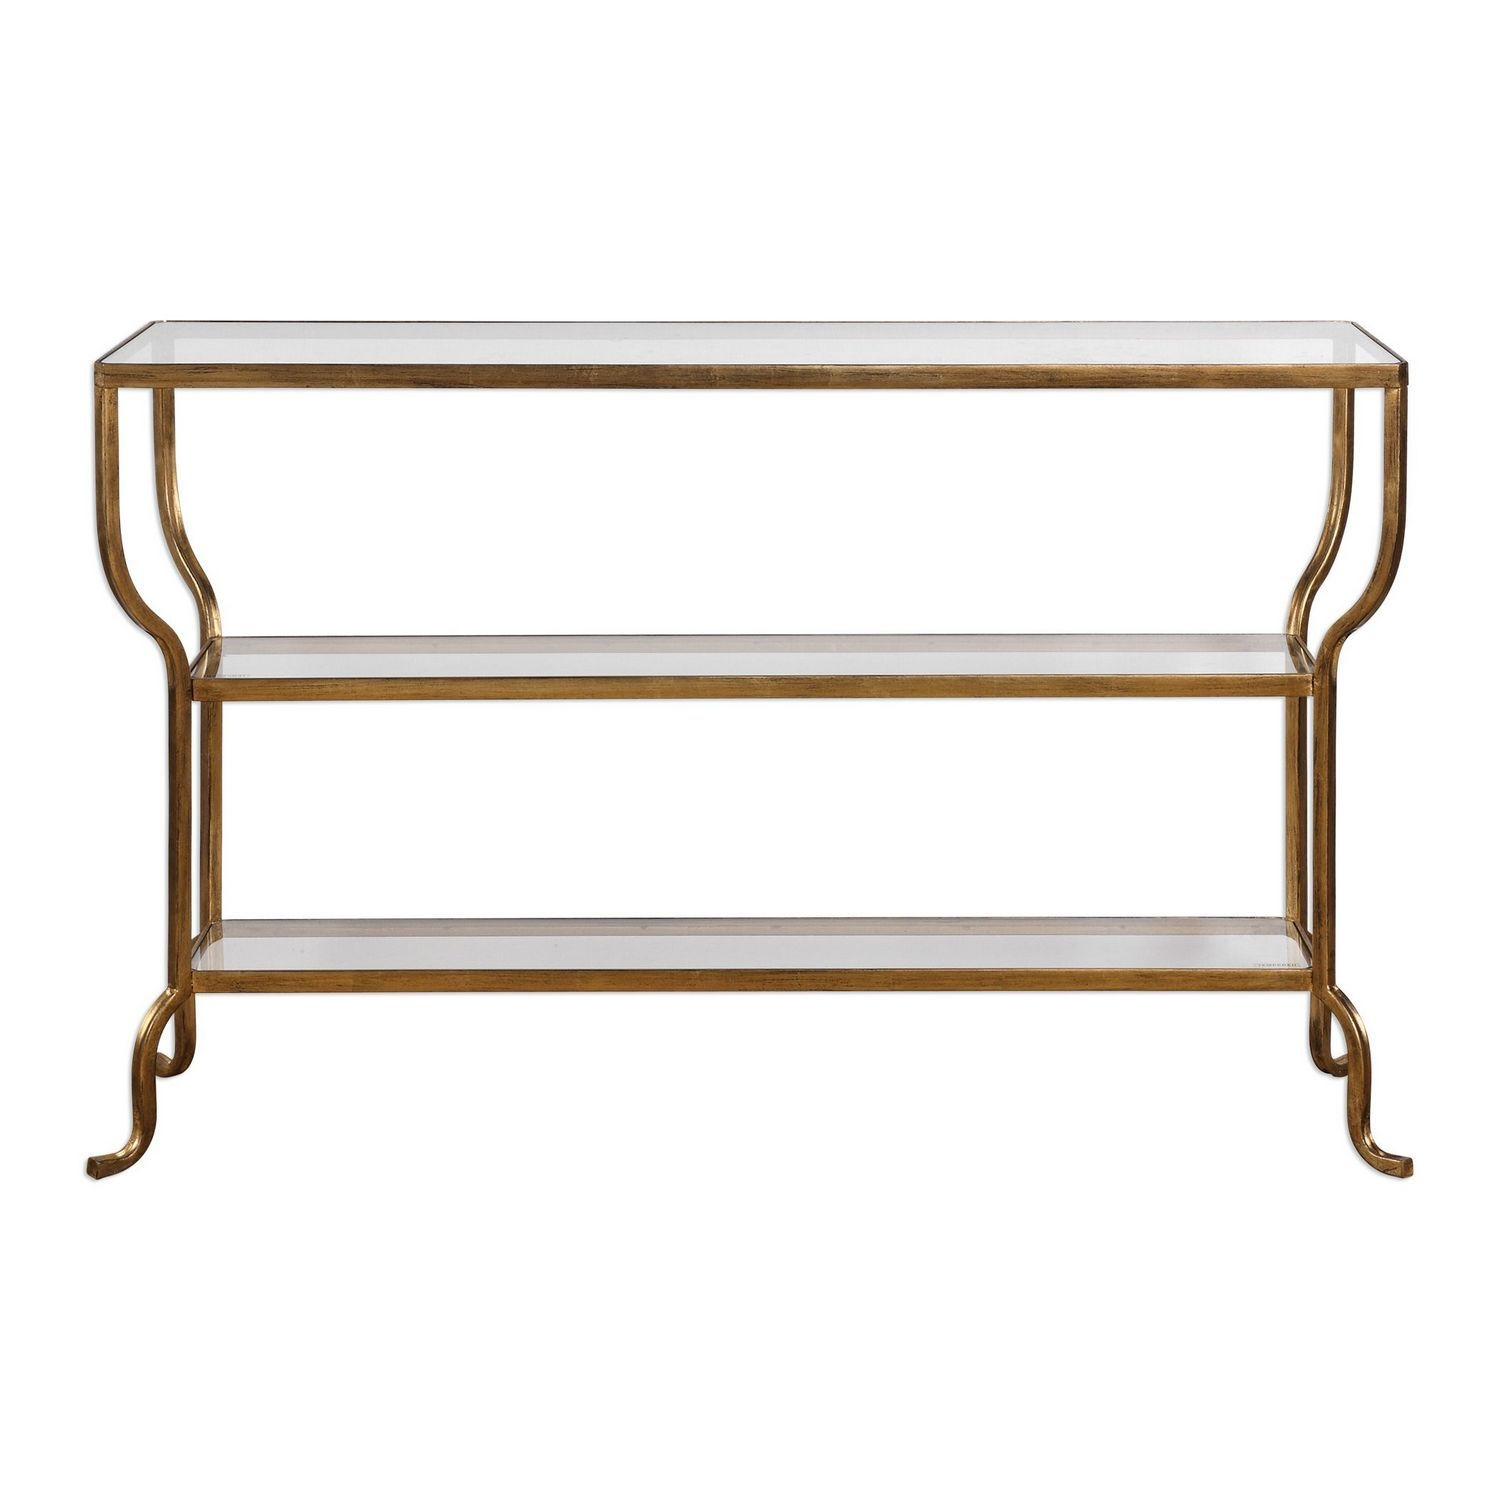 Uttermost Deline Console Table - Gold